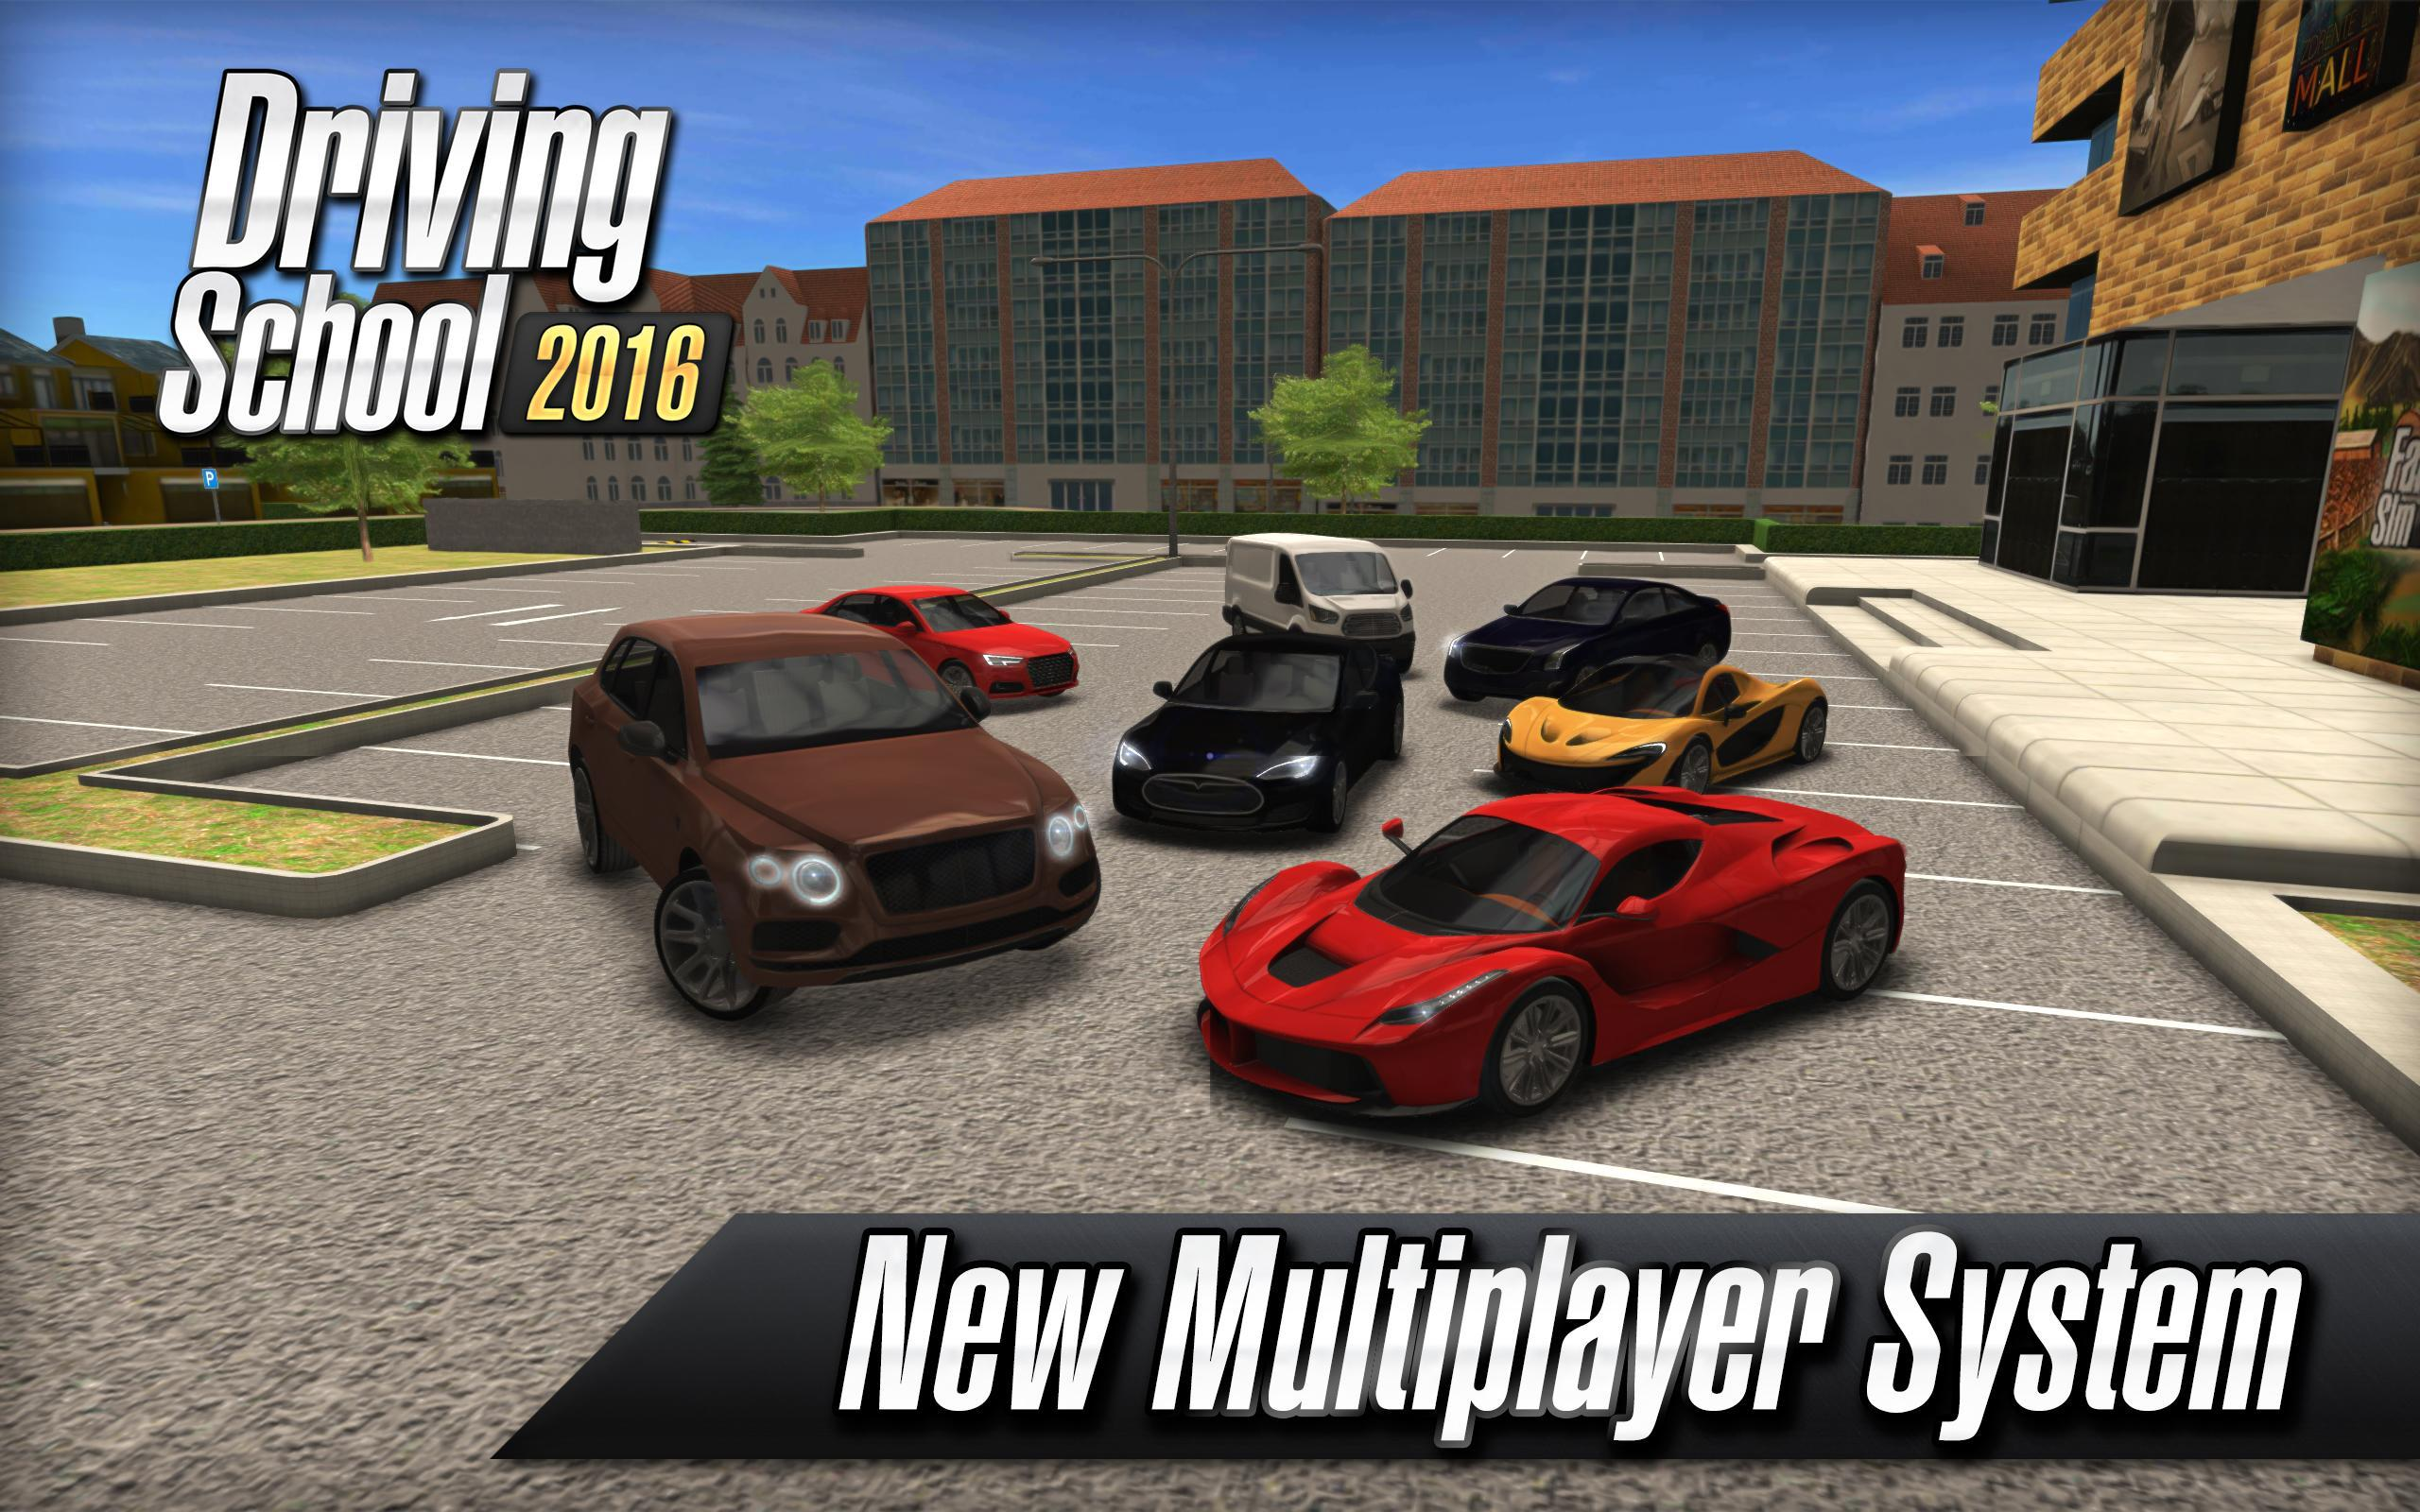 Driving School 2016 for Android - APK Download